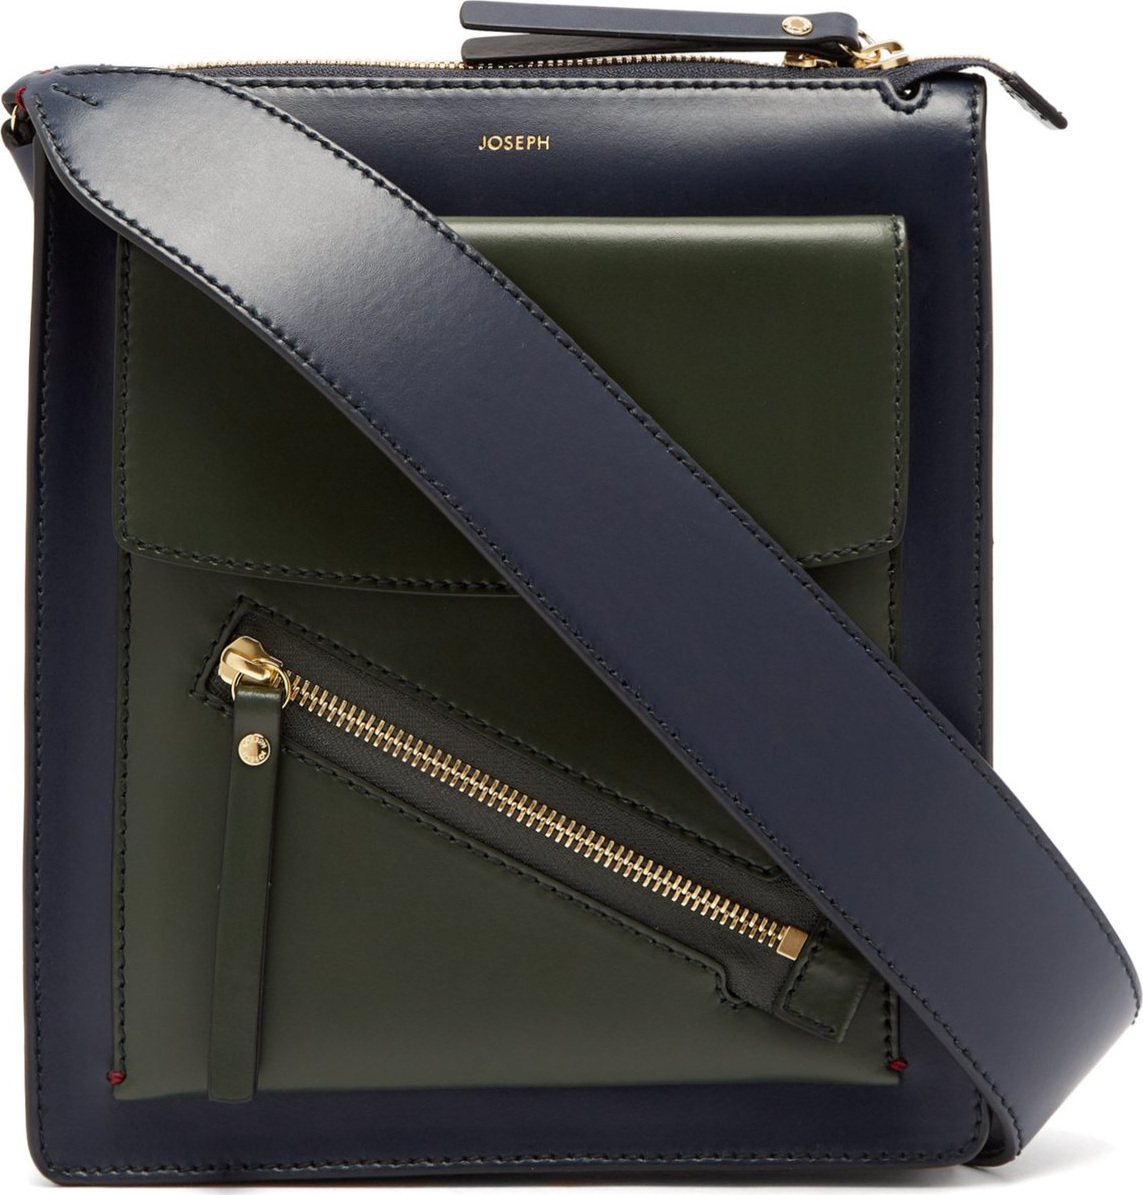 Joseph - Mortimer leather shoulder bag